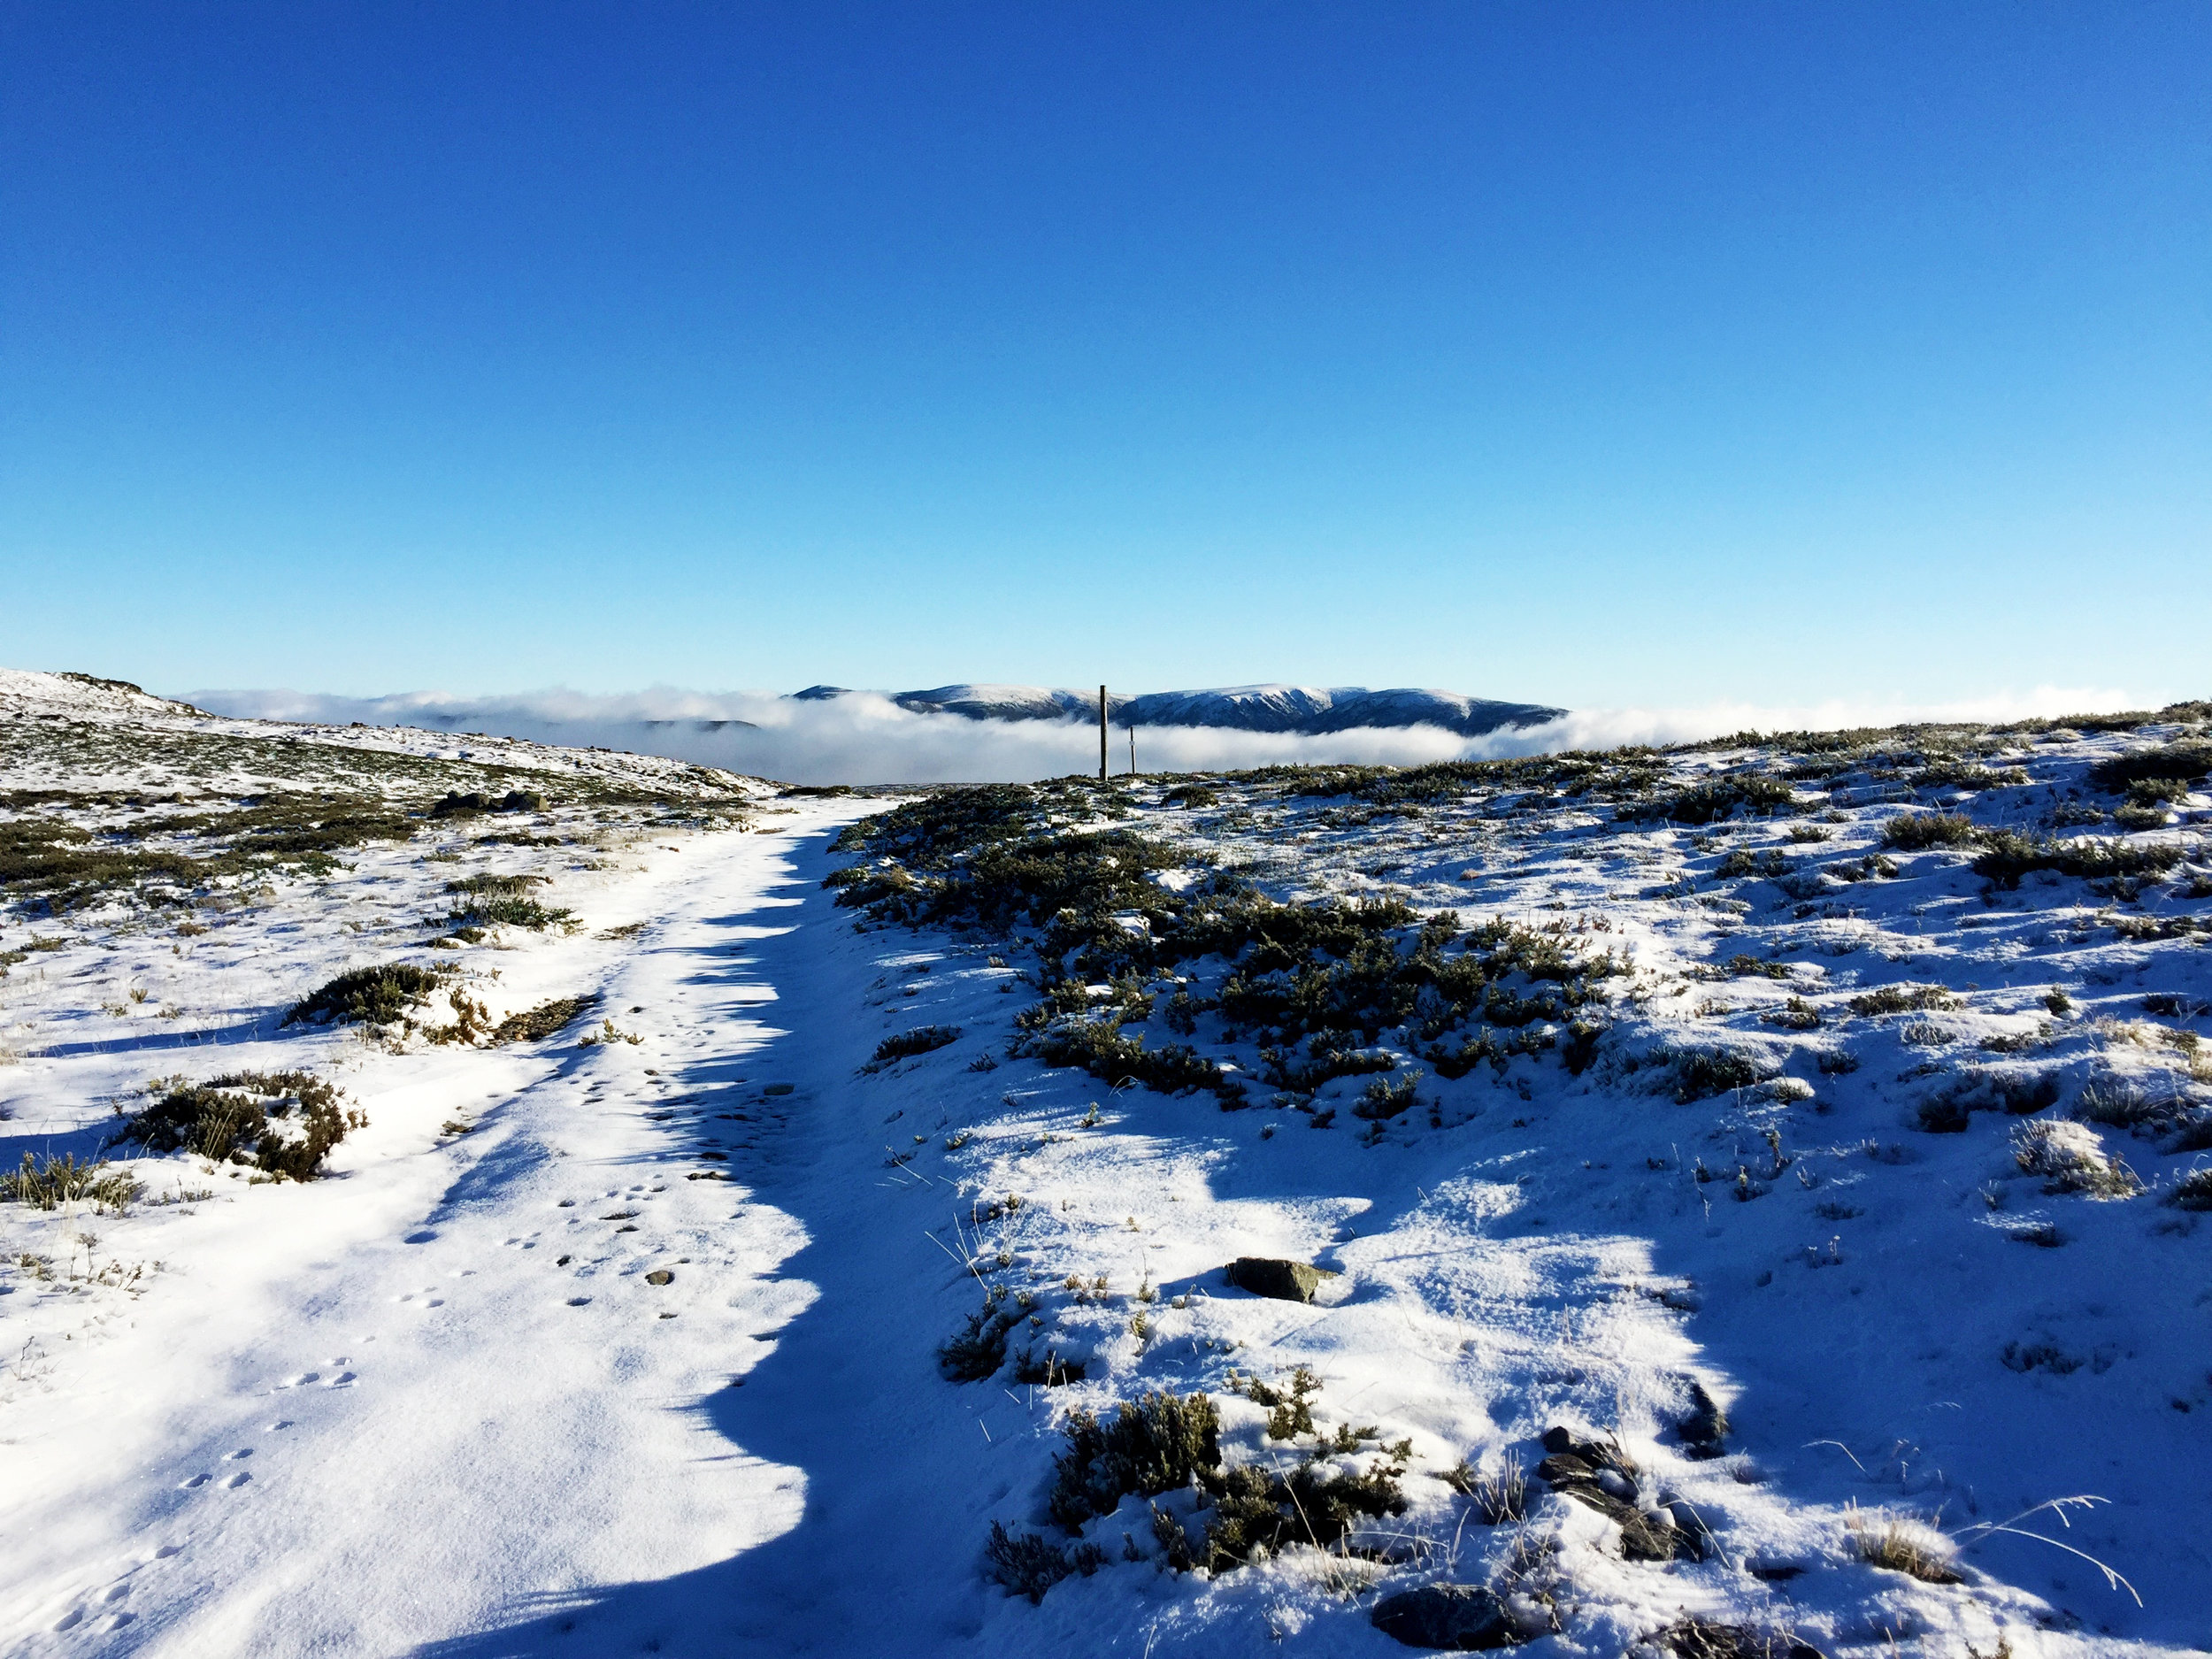 Views of Mount Bogong from near Mount Nelse